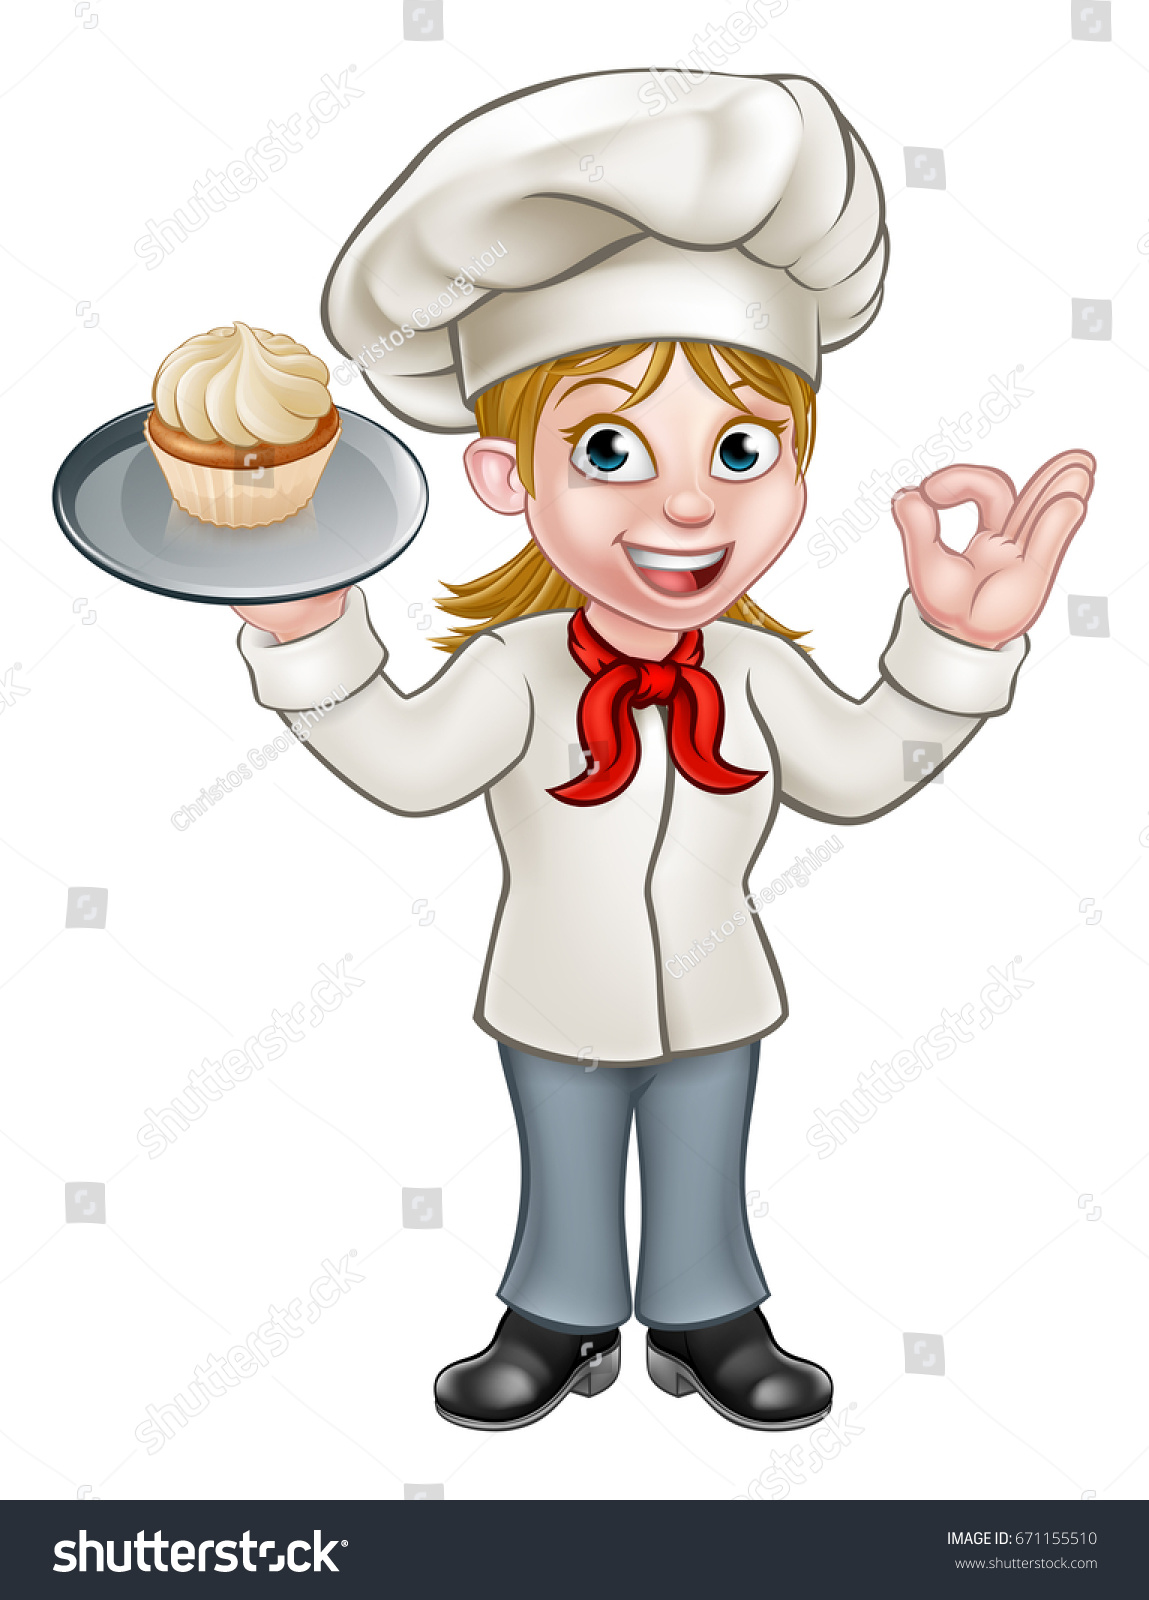 a cartoon woman pastry chef or baker character holding a plate with